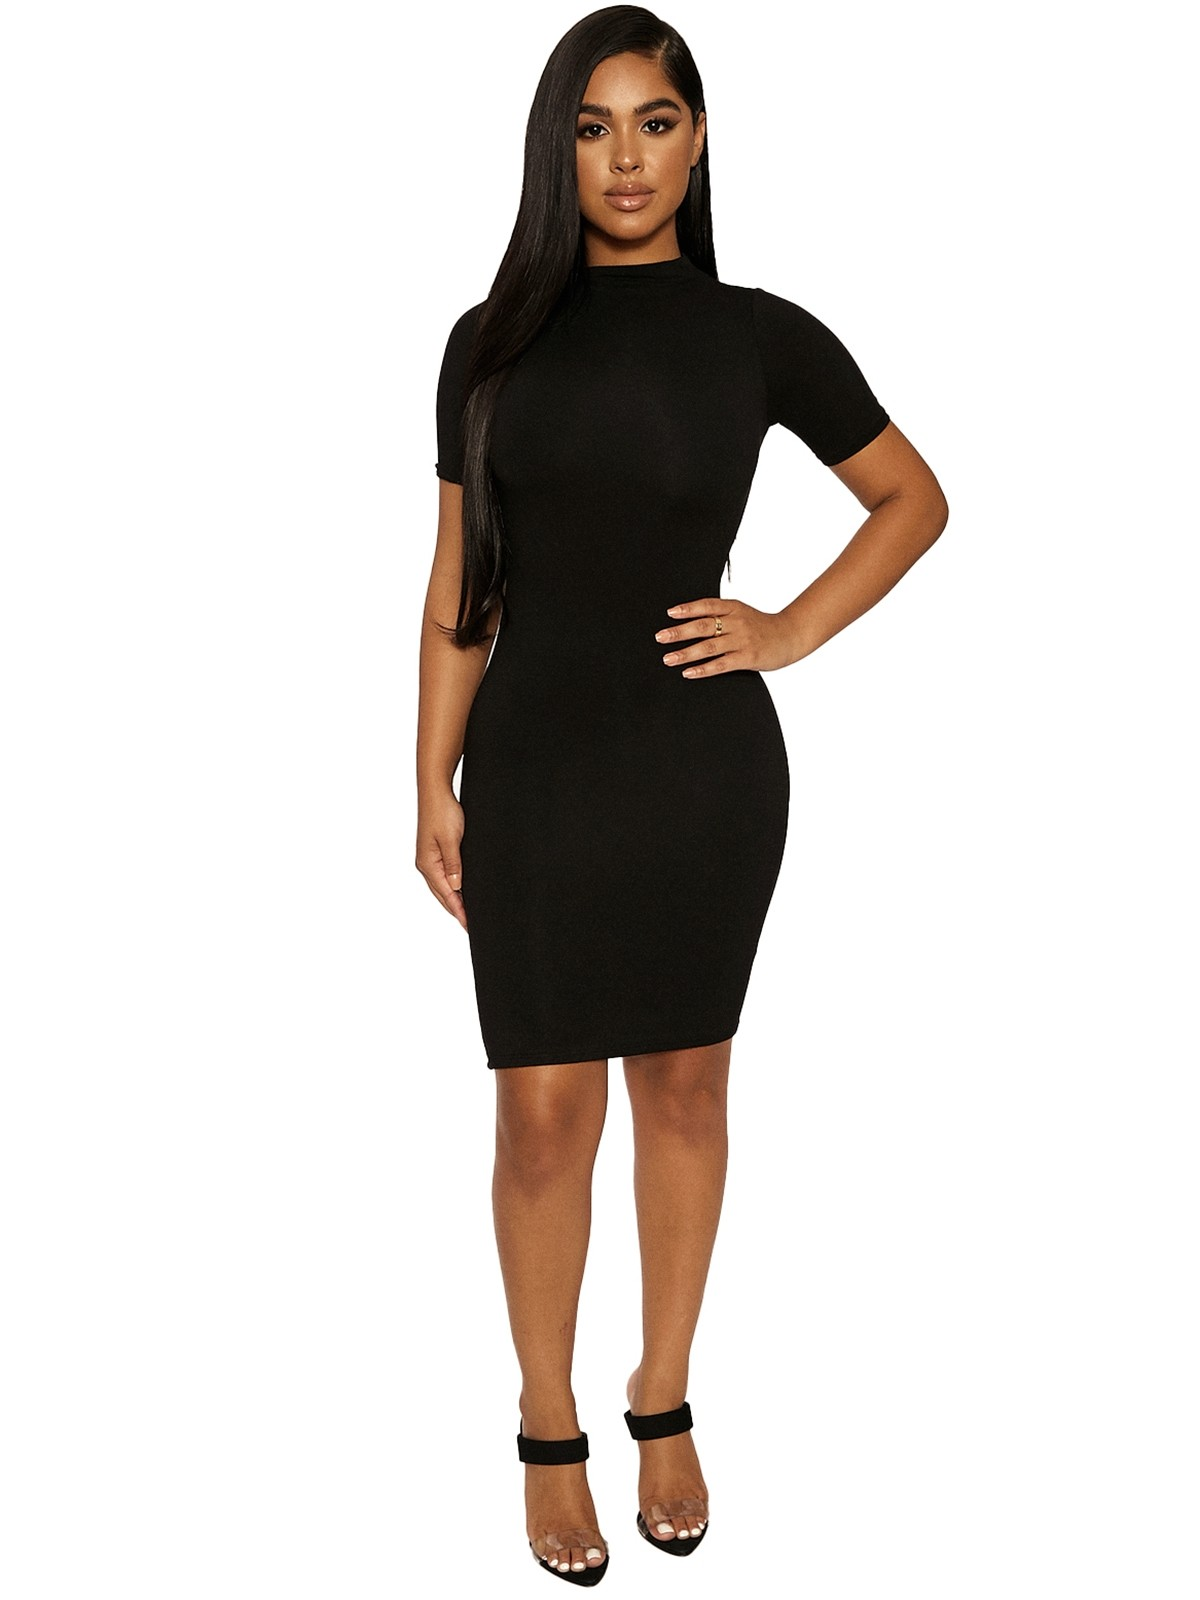 The NW Mini T Dress by Naked Wardrobe, available on nakedwardrobe.com for $45 Kylie Jenner Dress SIMILAR PRODUCT